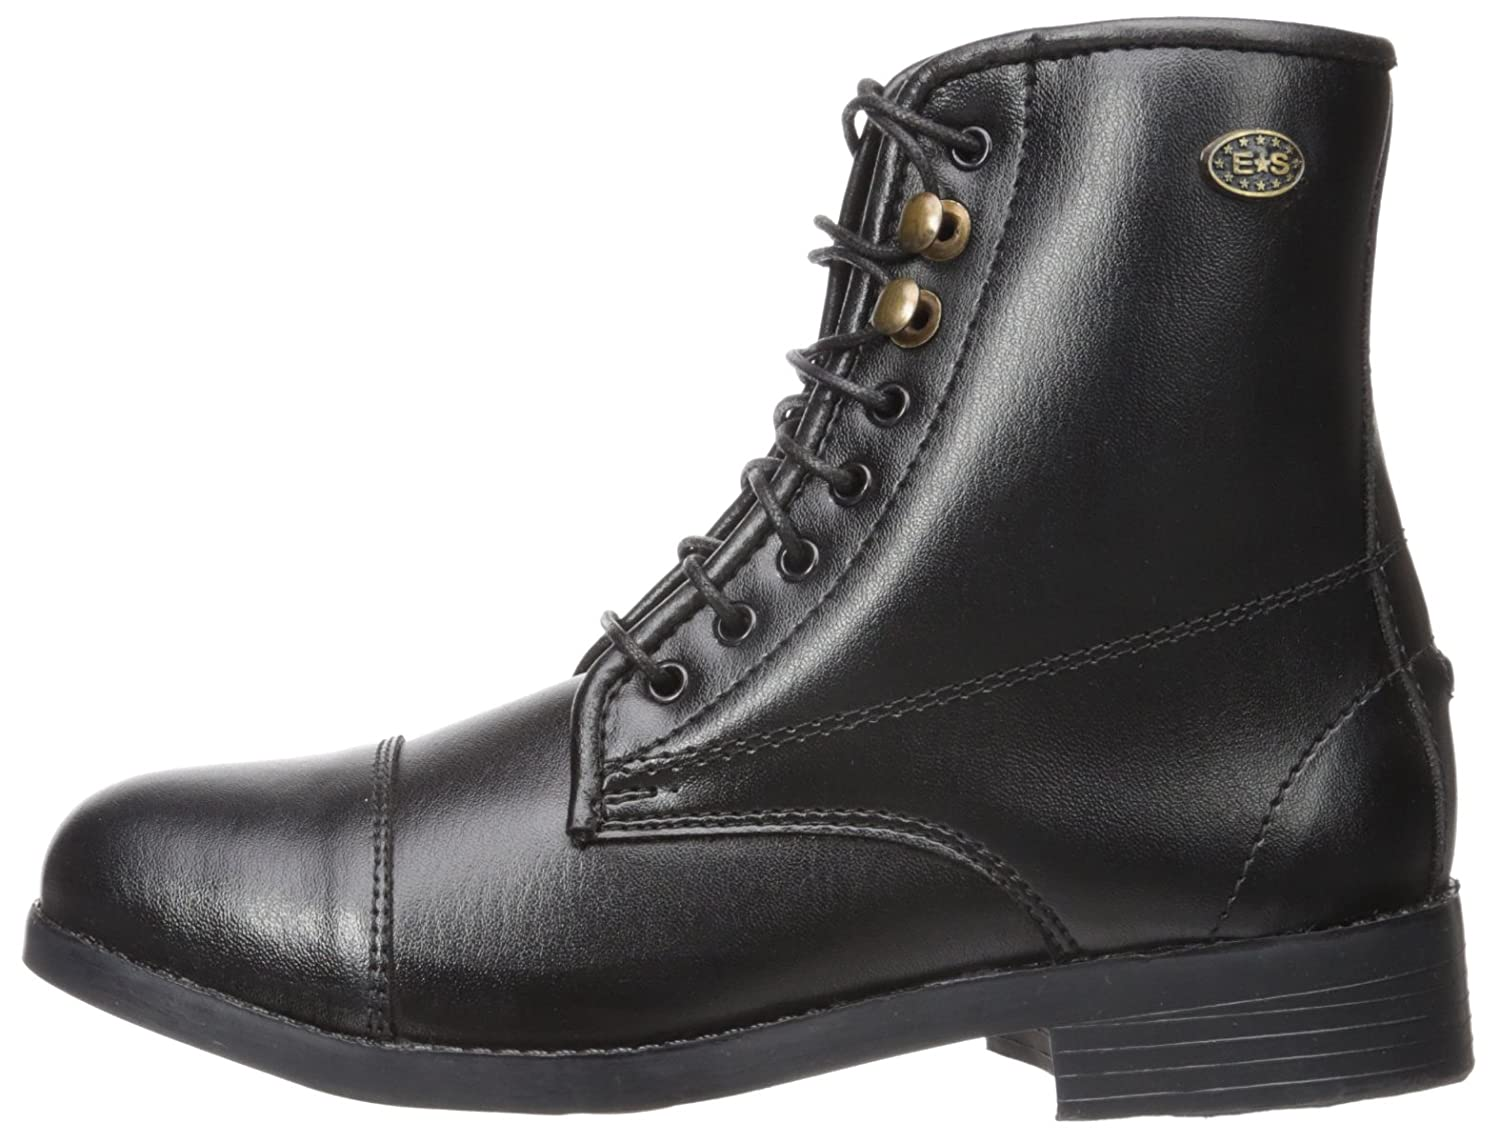 Childs Lace Paddock Boot ENGLISH RIDING SUPPLY All Weather Equistar